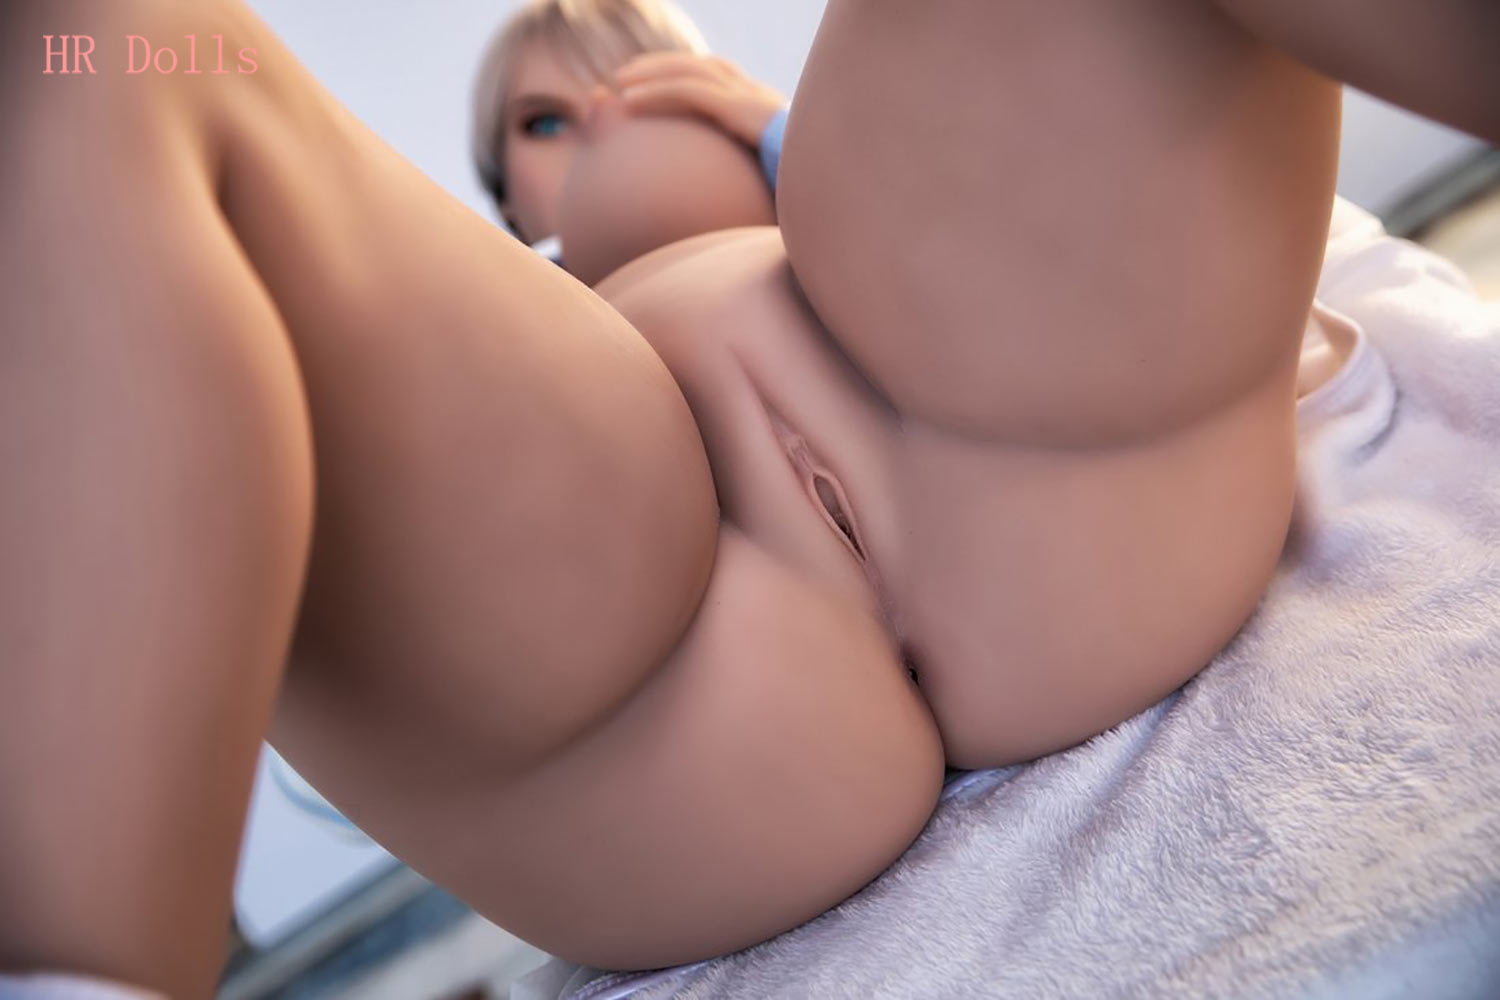 Big breasted sex doll that can clearly see the vagina